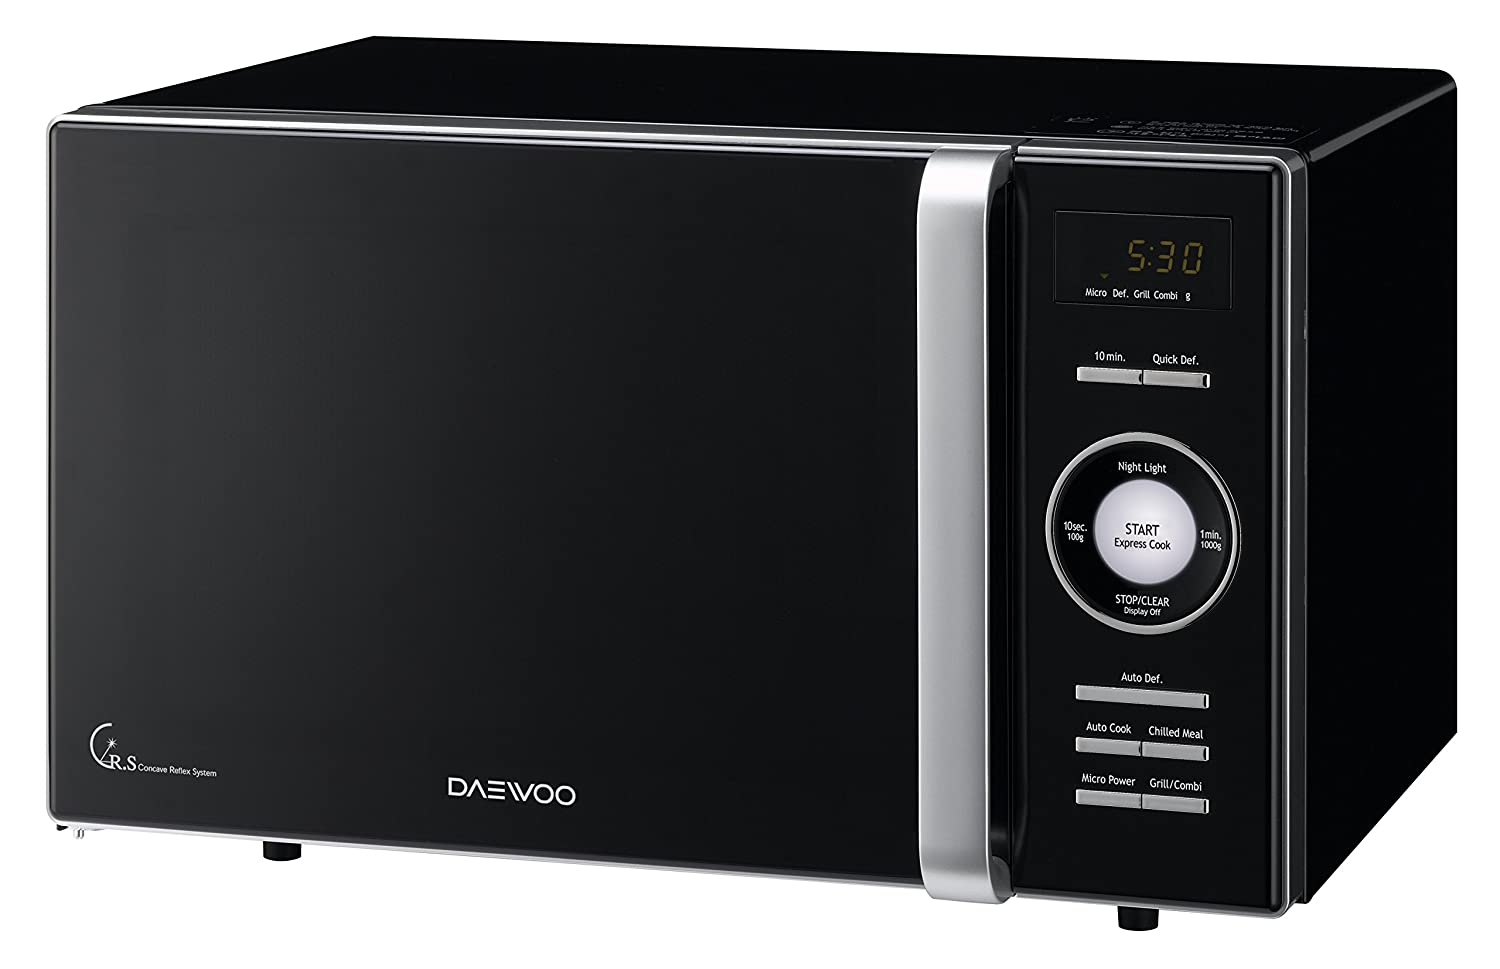 Daewoo KOG-8A6K Microondas, 23 litros, con Grill, Color Negro, 800 W